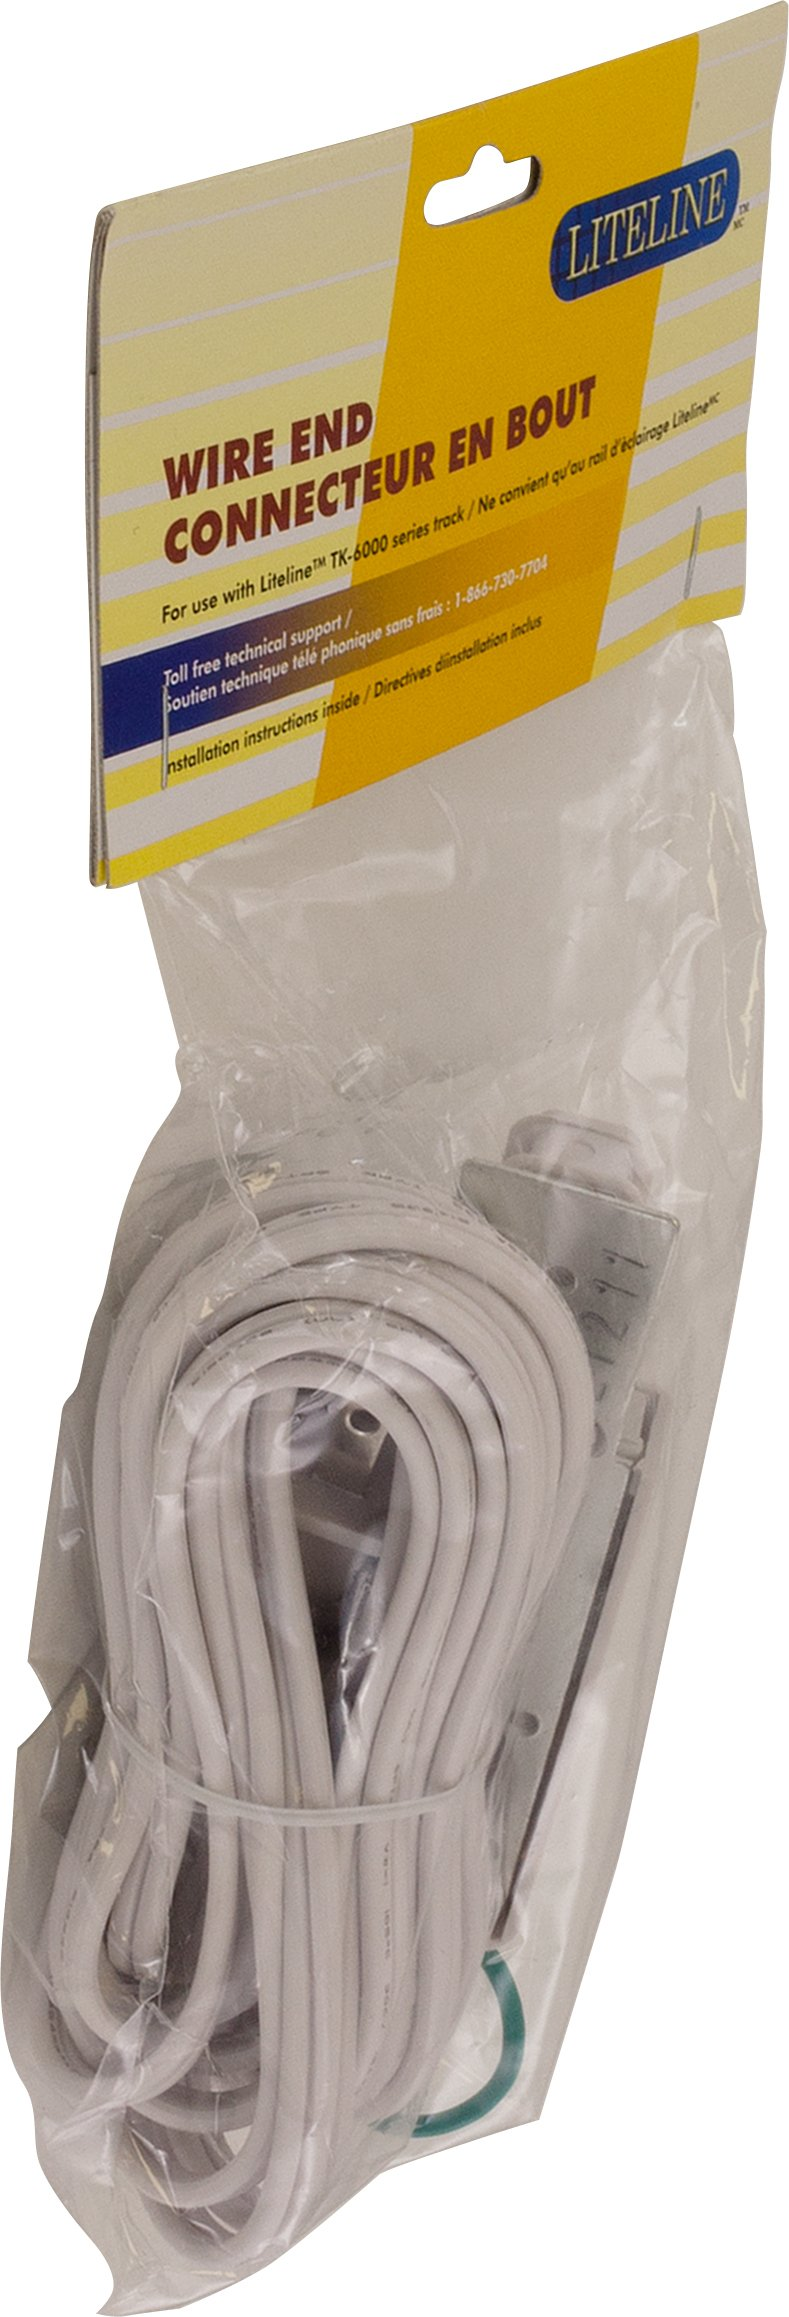 Liteline WE6110-WH Wire End For Track Fixtures, White by Liteline Corporation (Image #2)